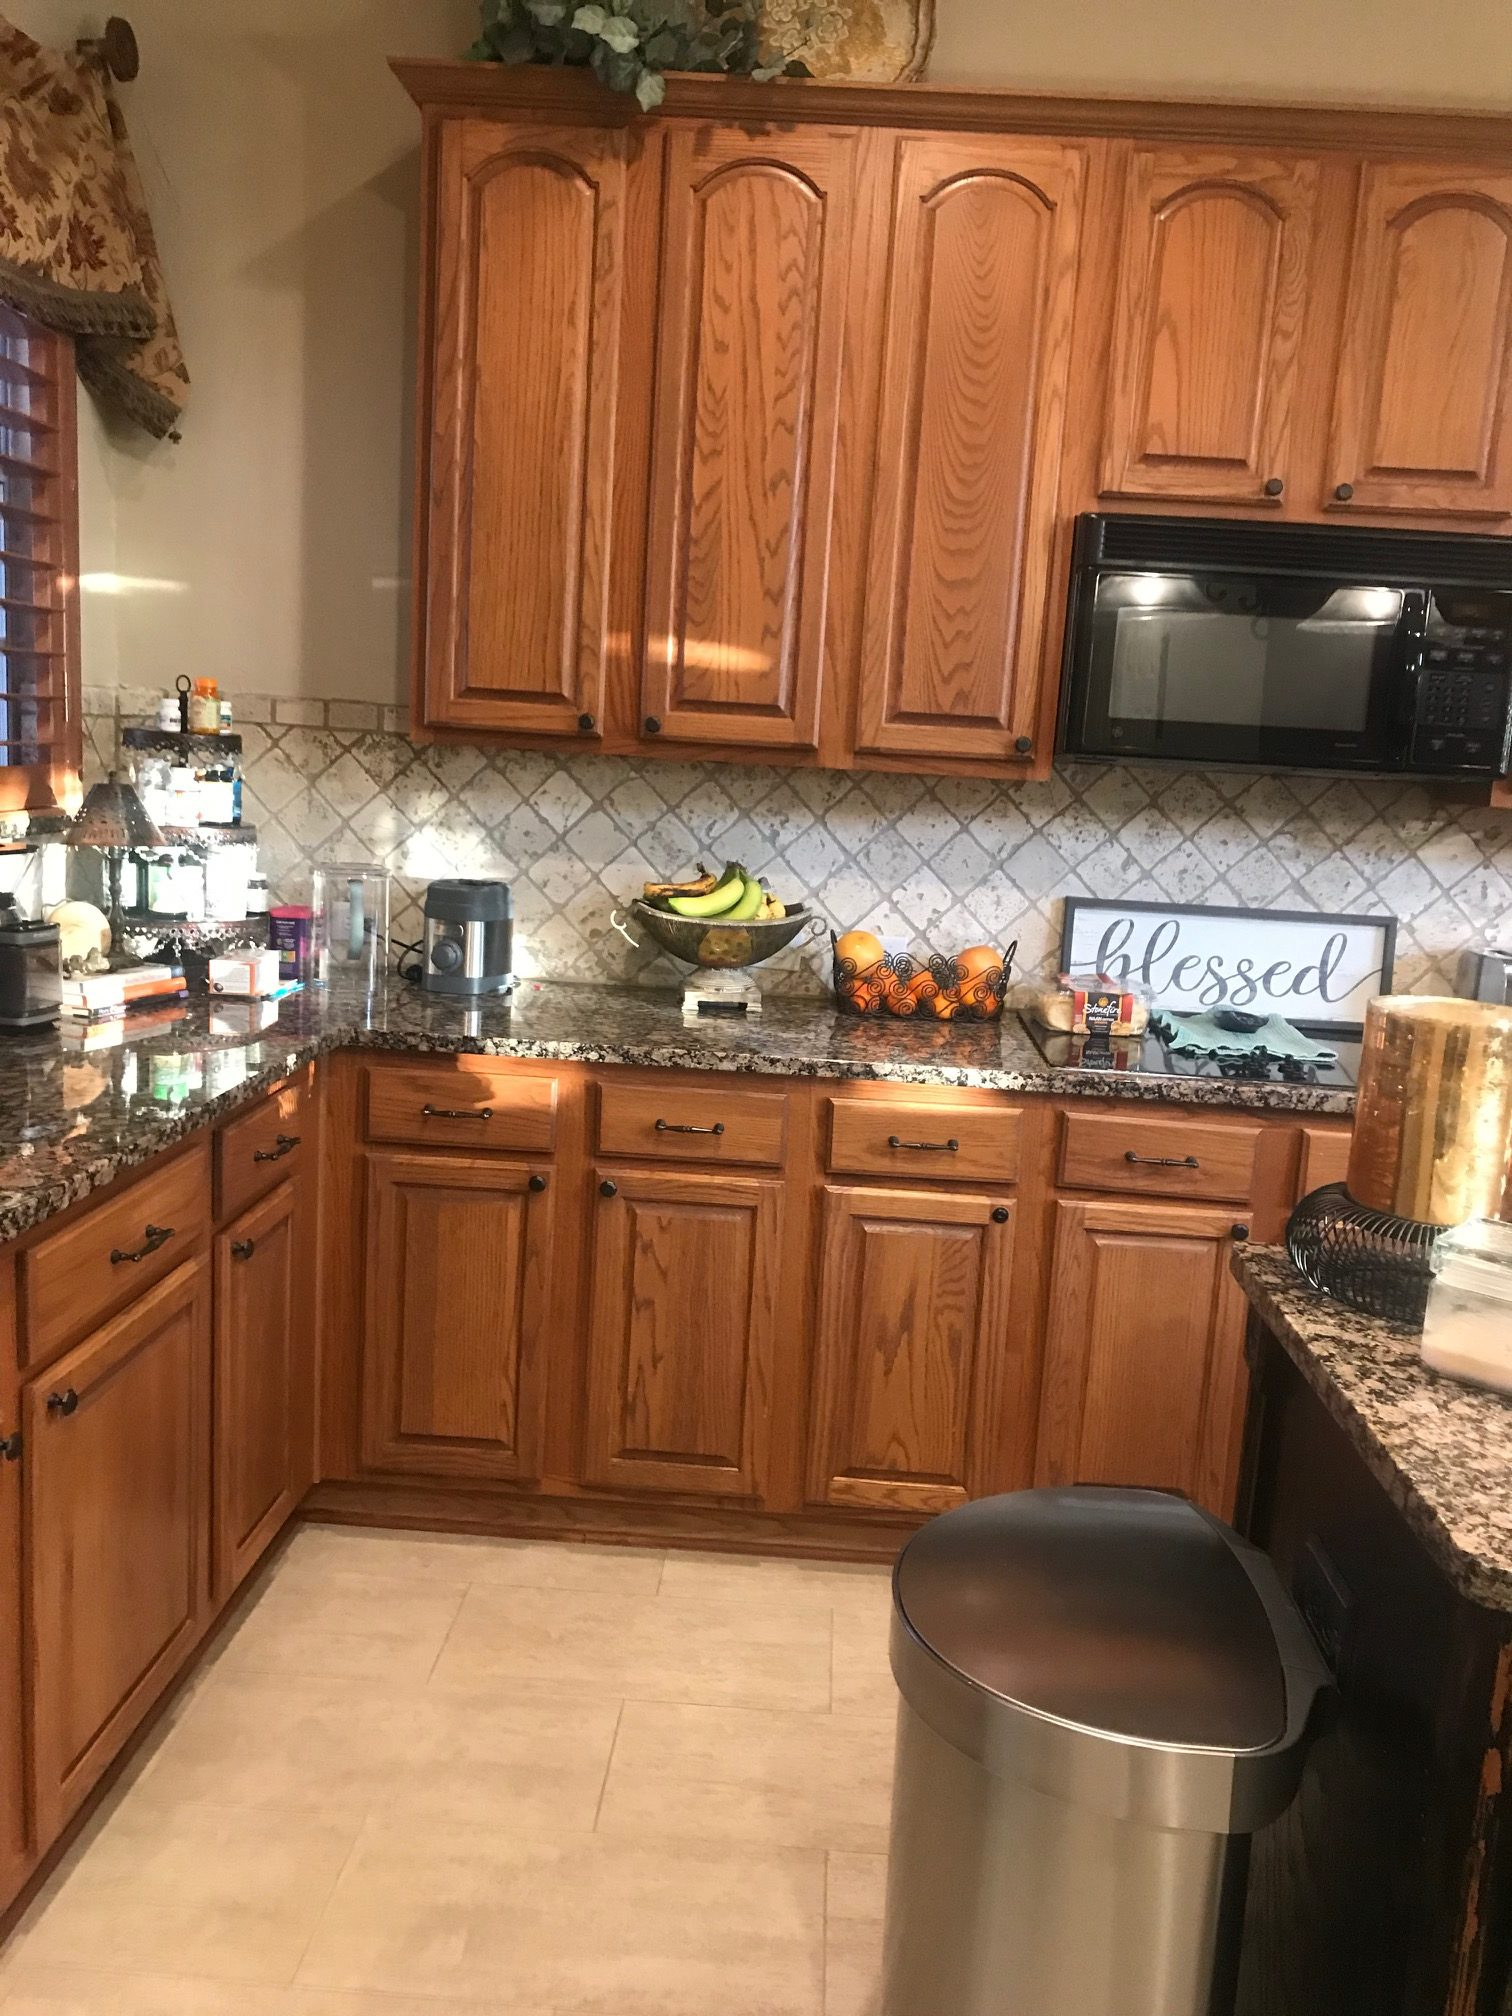 oak kitchen cabinet update ideas before being painted